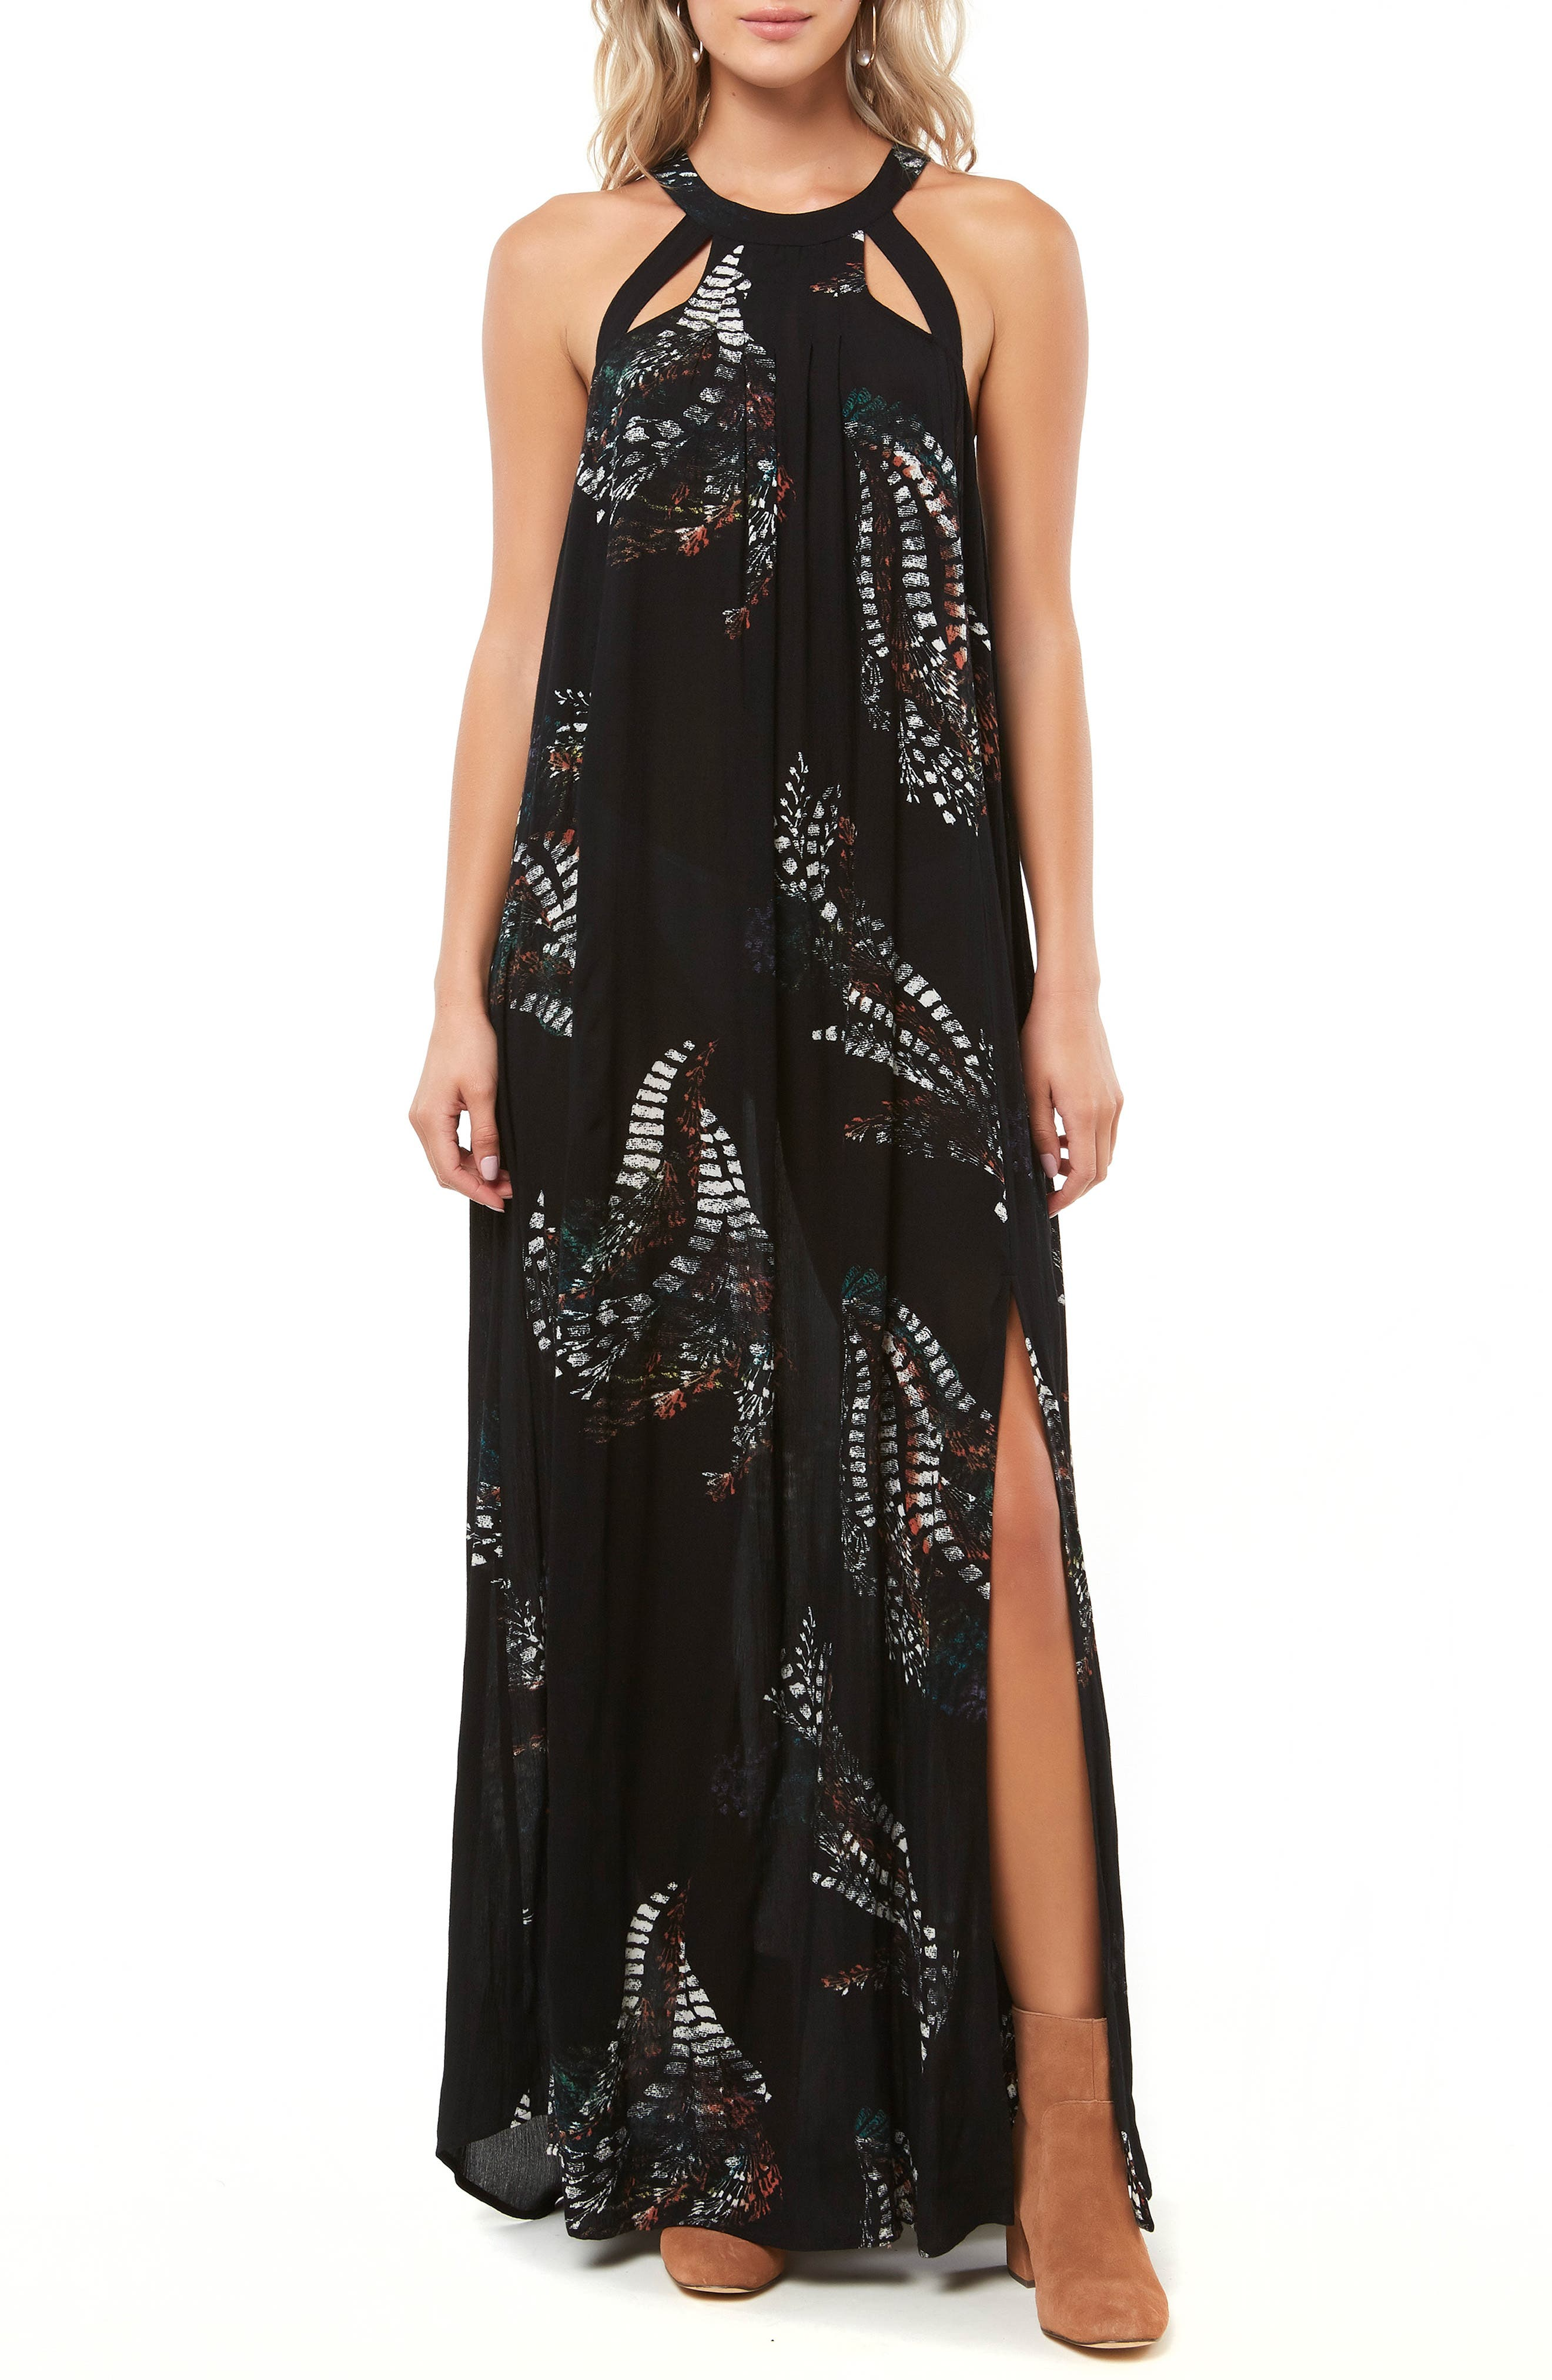 Luka Cutout Maxi Dress,                             Main thumbnail 1, color,                             BLACK